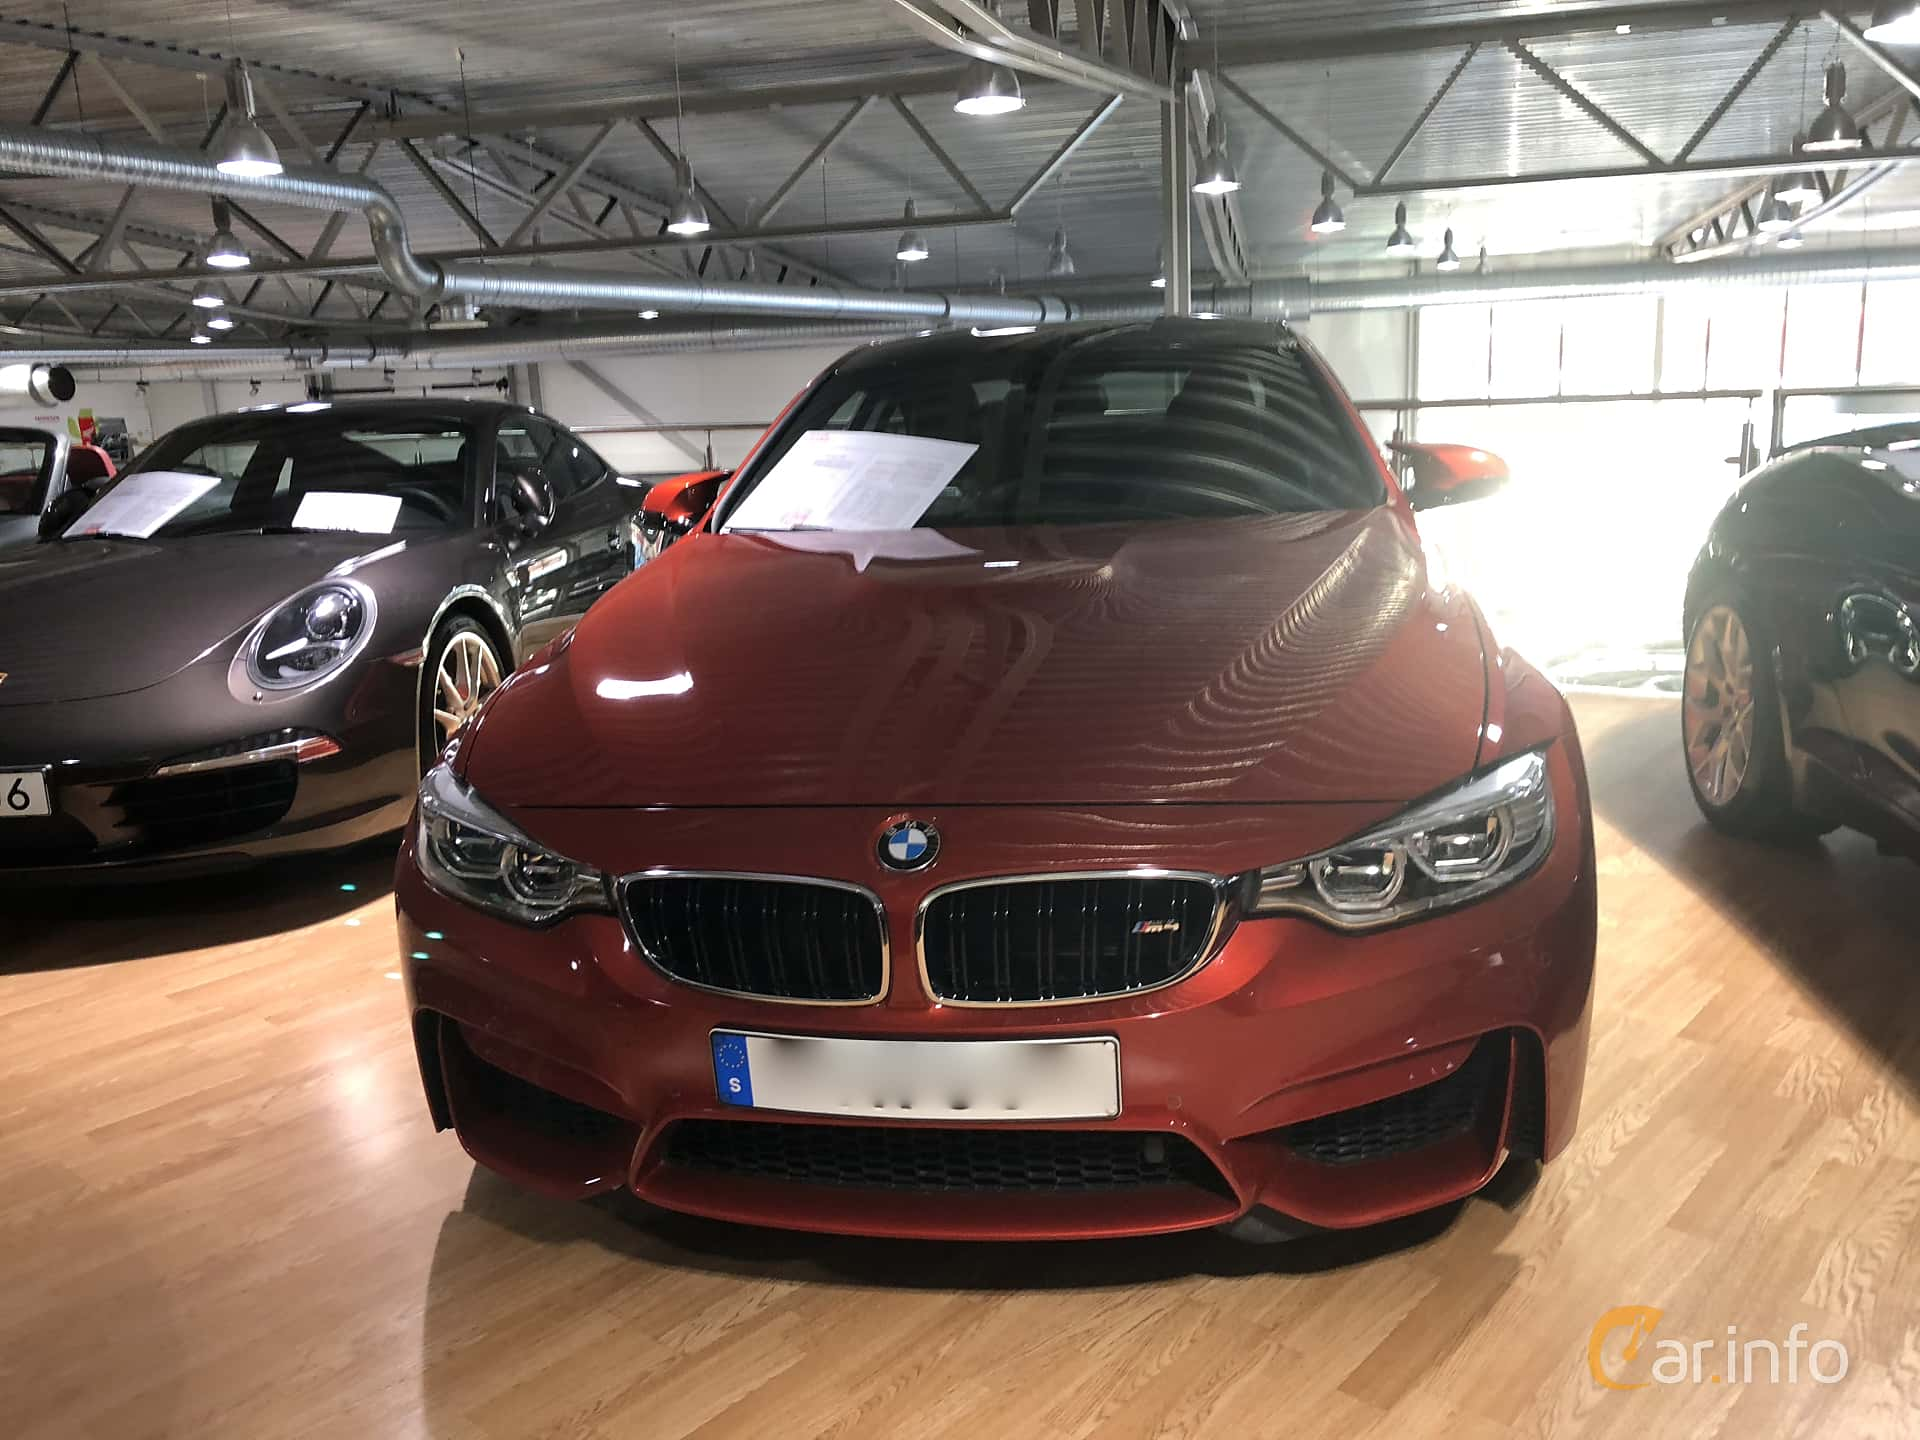 BMW M4 Coupé 3.0 DCT, 431hp, 2014